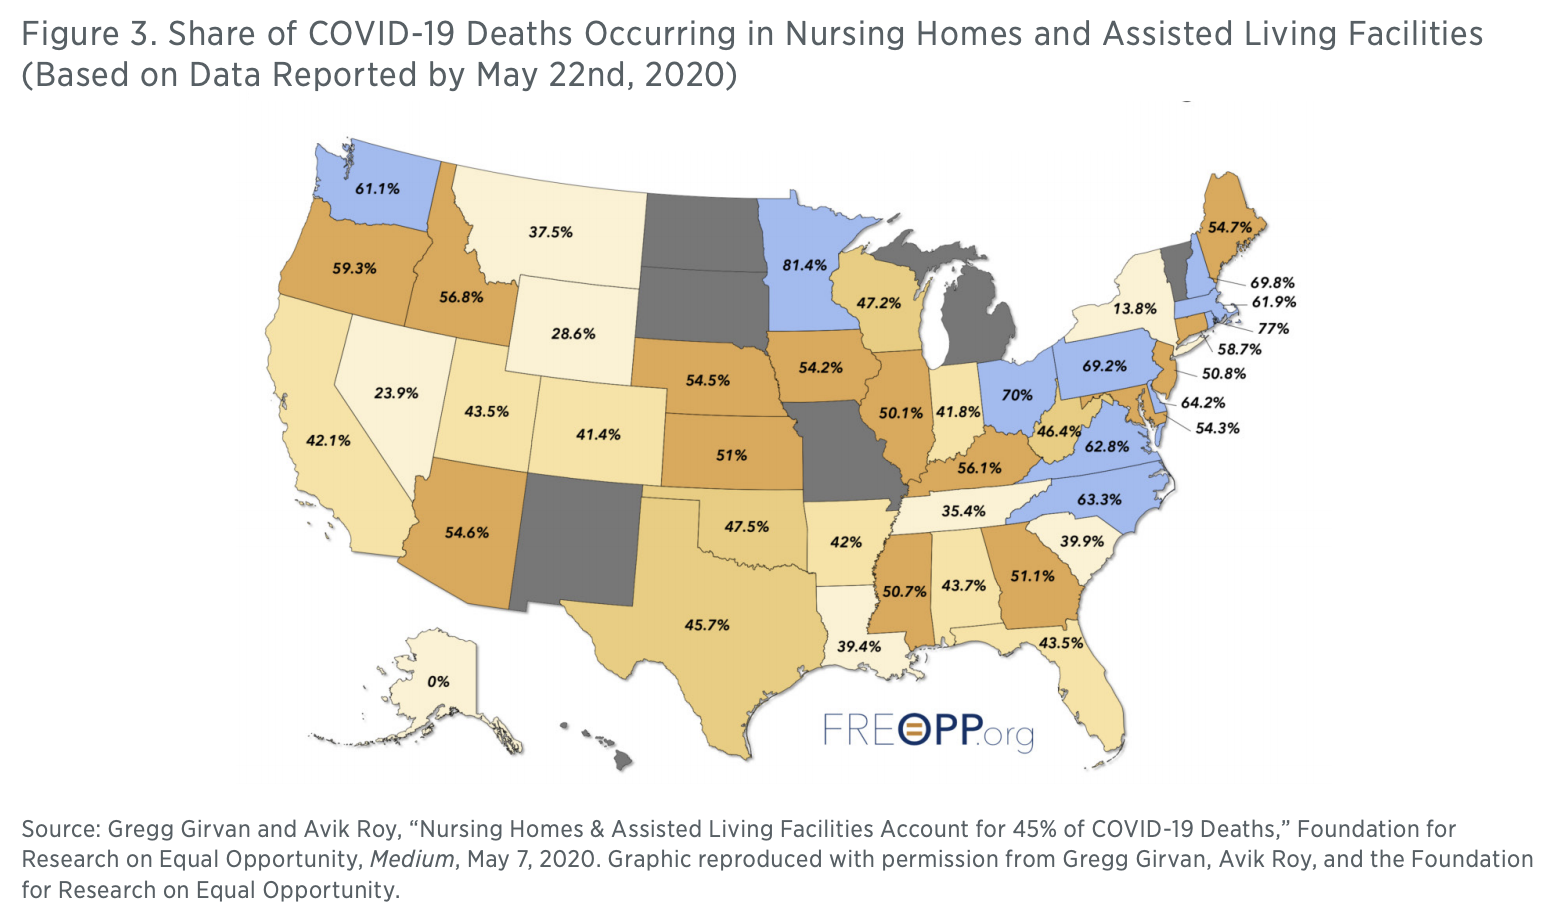 Figure 3. Share of COVID-19 Deaths Occurring in Nursing Homes and Assisted Living Facilities (Based on Data Reported by May 22nd, 2020)